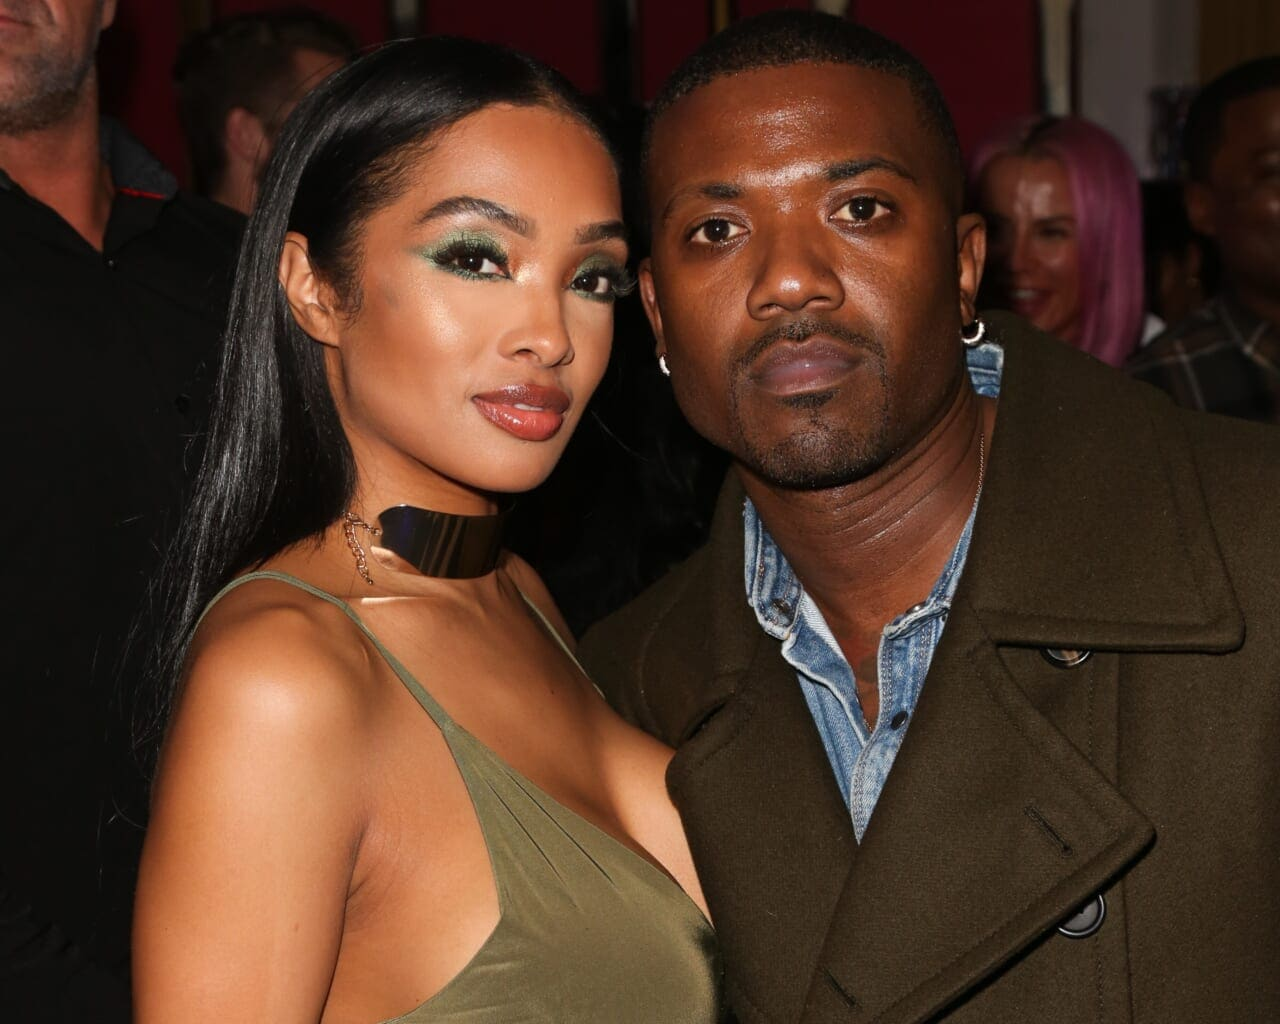 Princess Love says Ray J pushing her in pool was 'my karma' - TheGrio